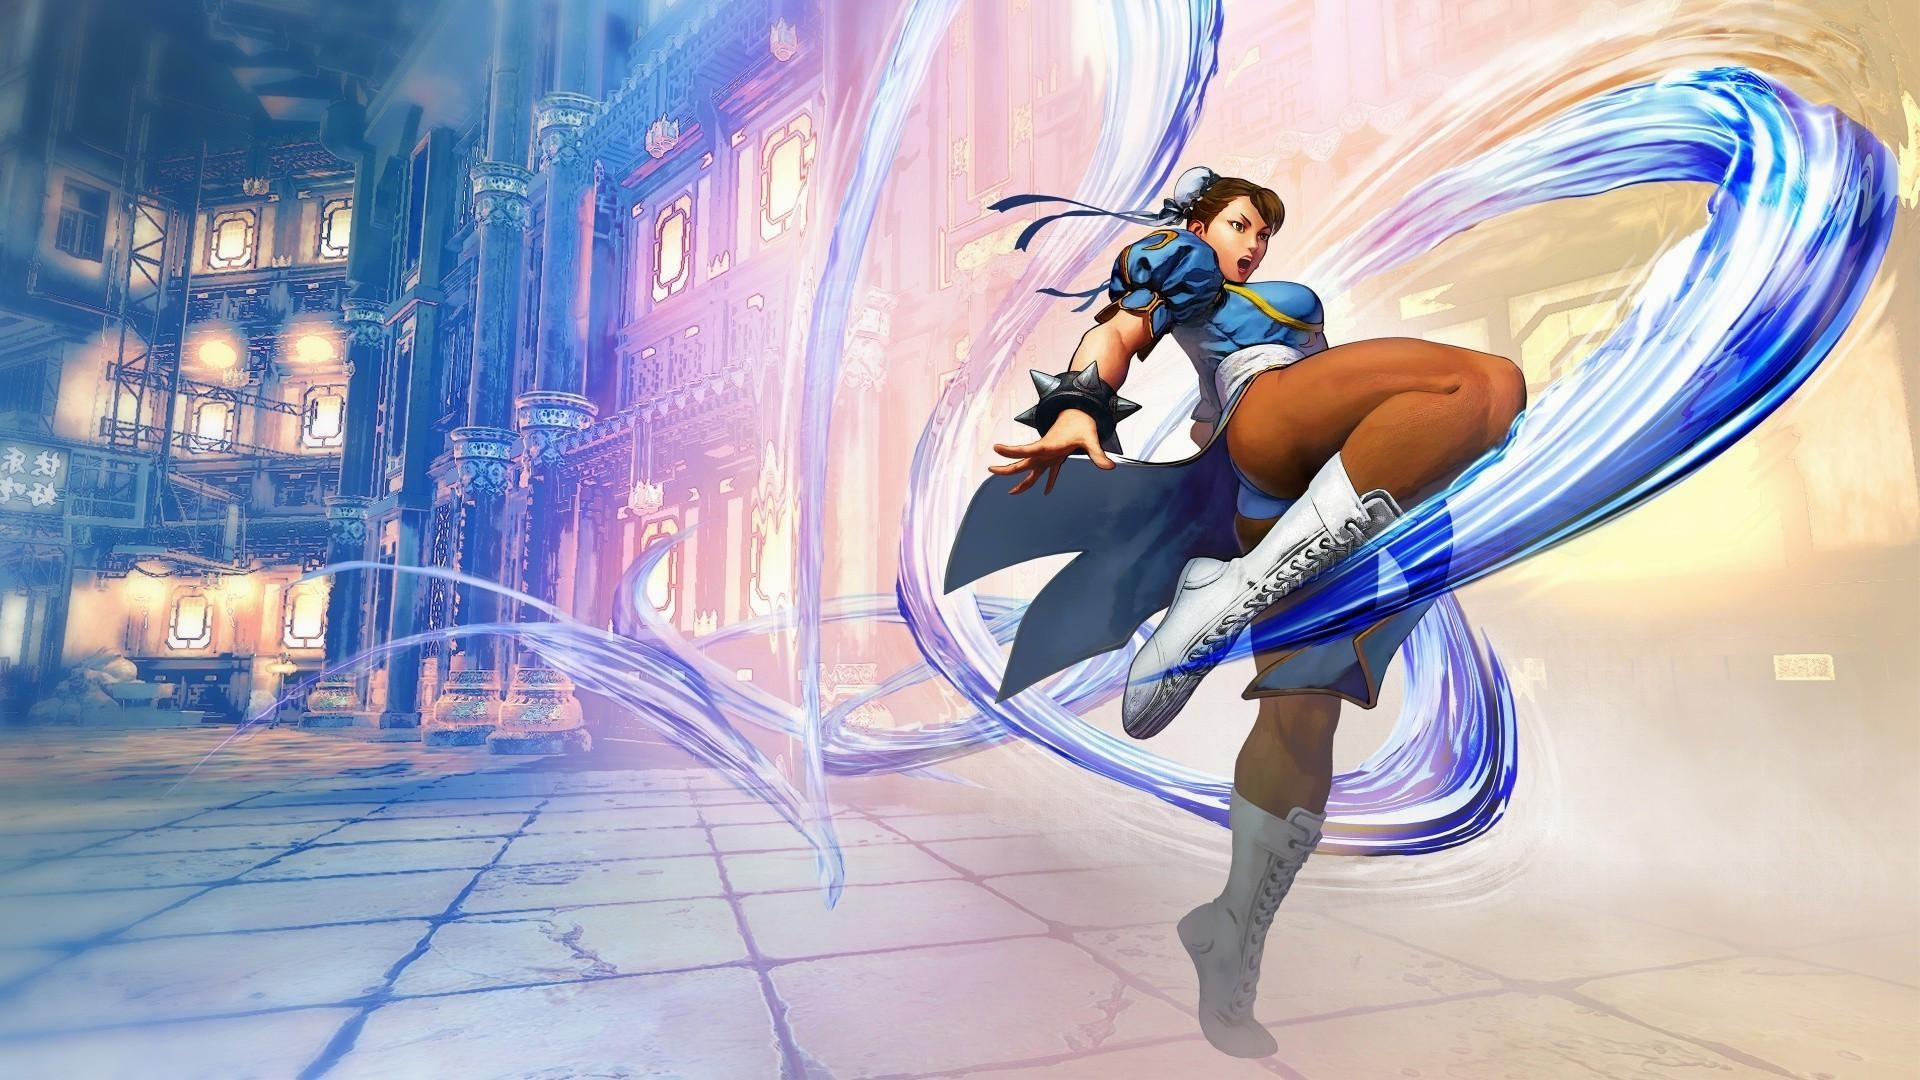 wallpaper.wiki-Download-Free-Chun-Li-Background-PIC-